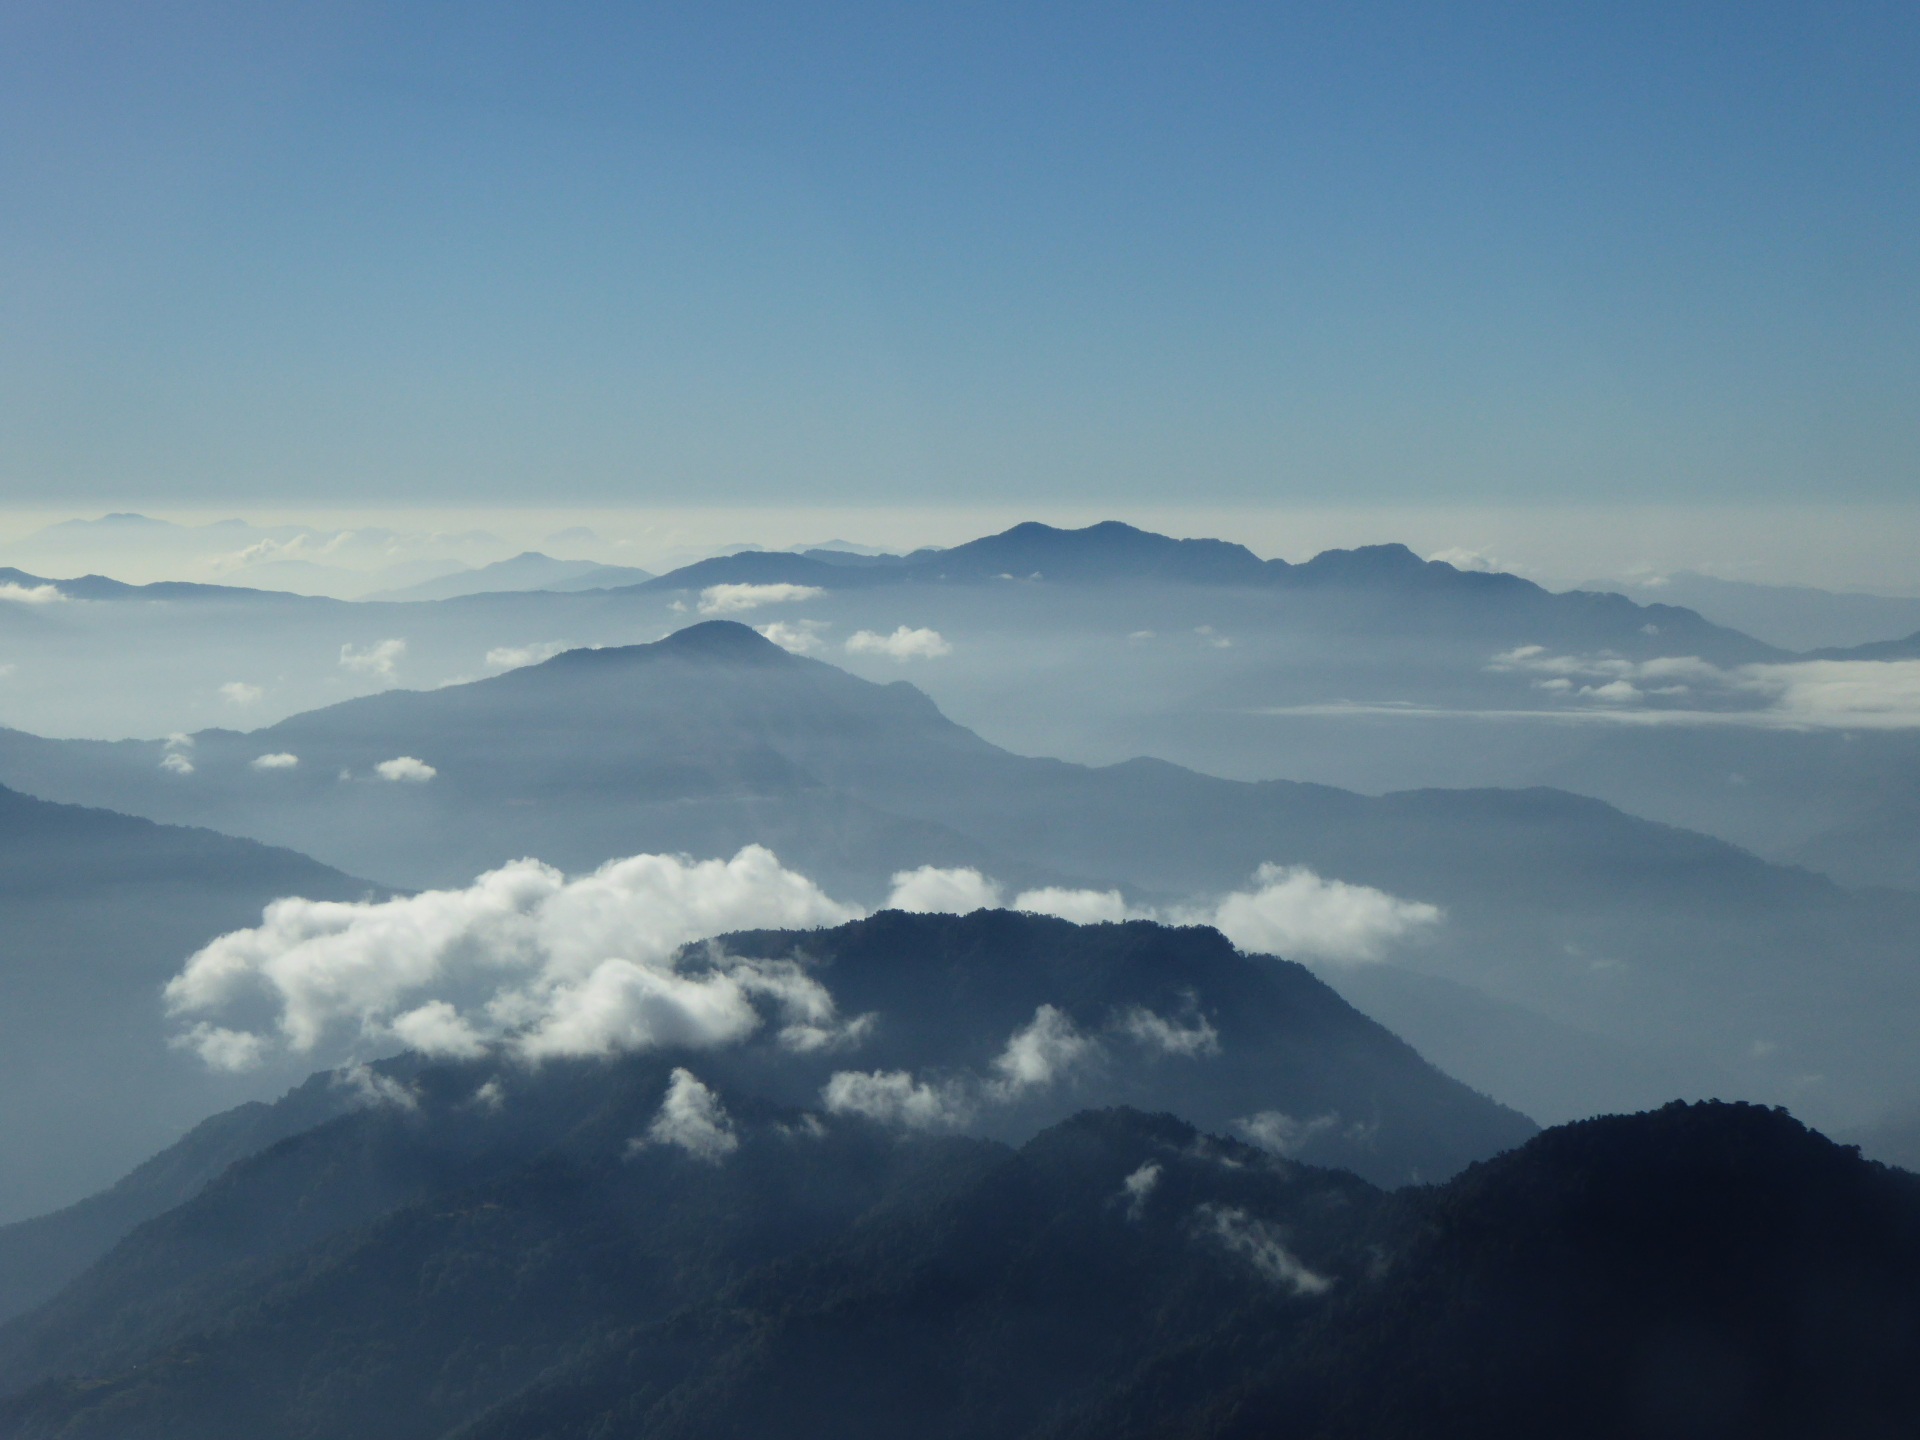 The Himalayas by air